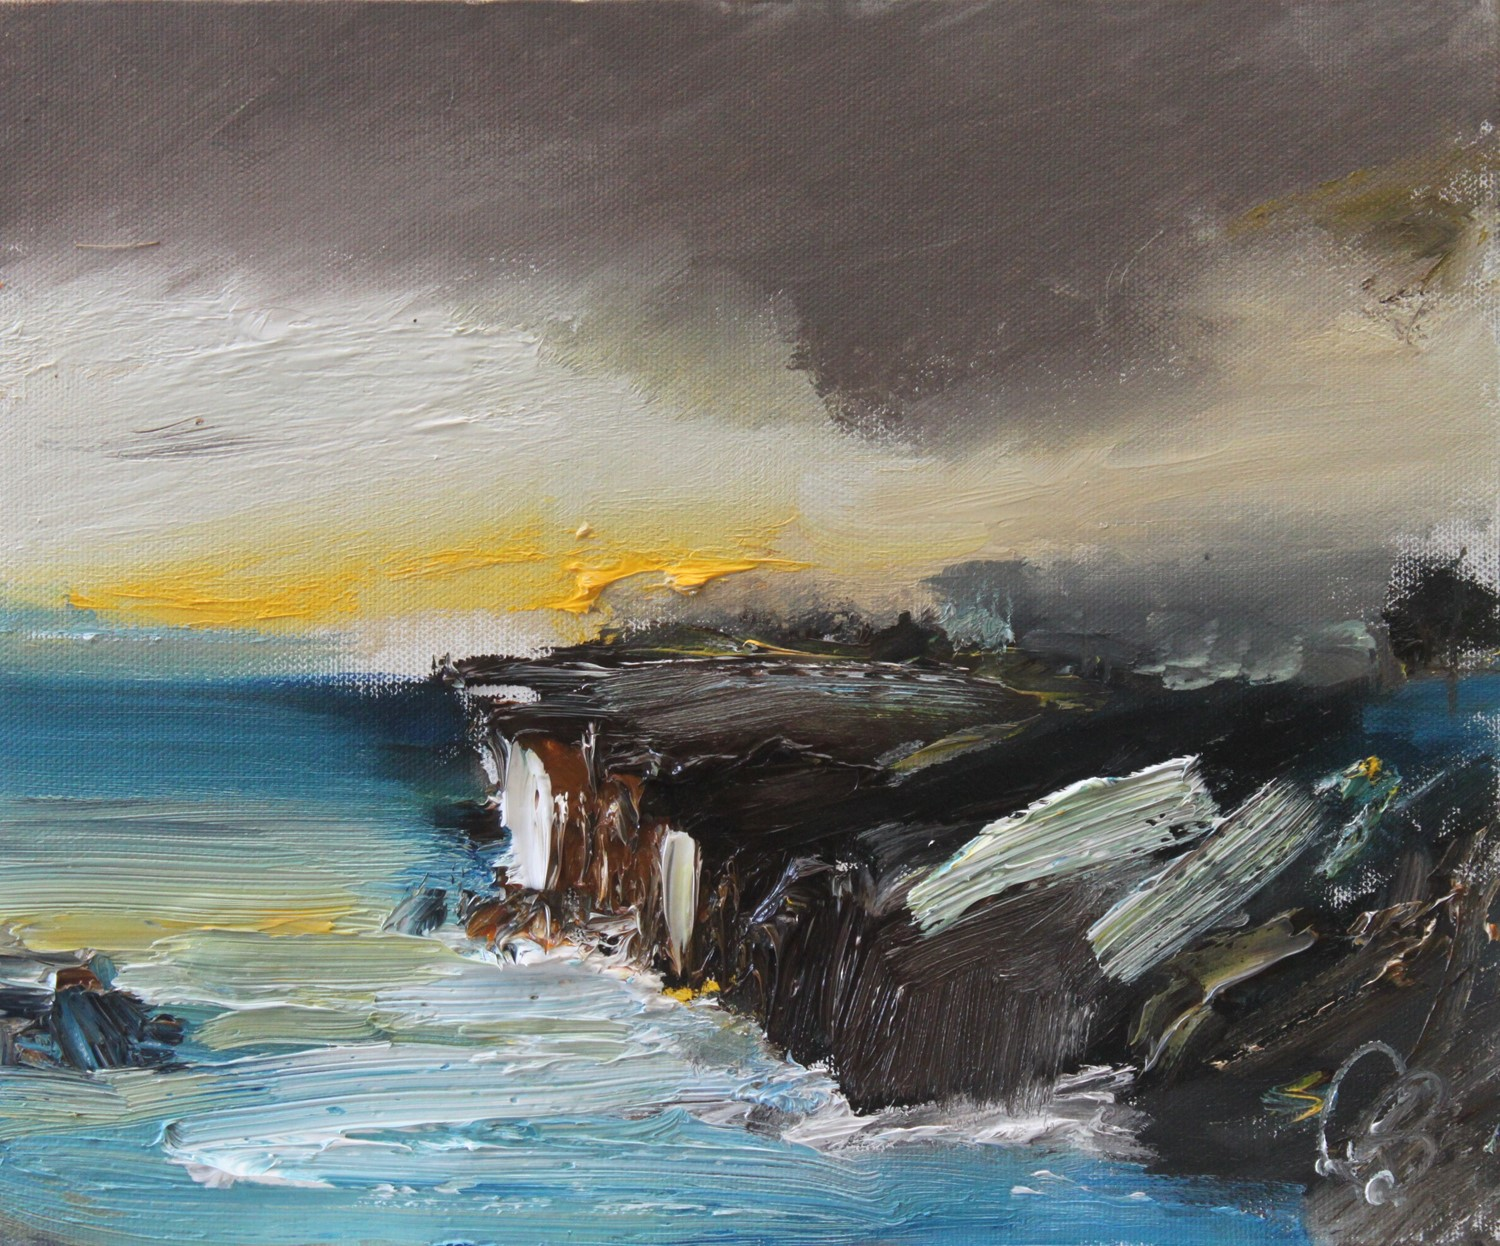 'Simmering Storm' by artist Rosanne Barr